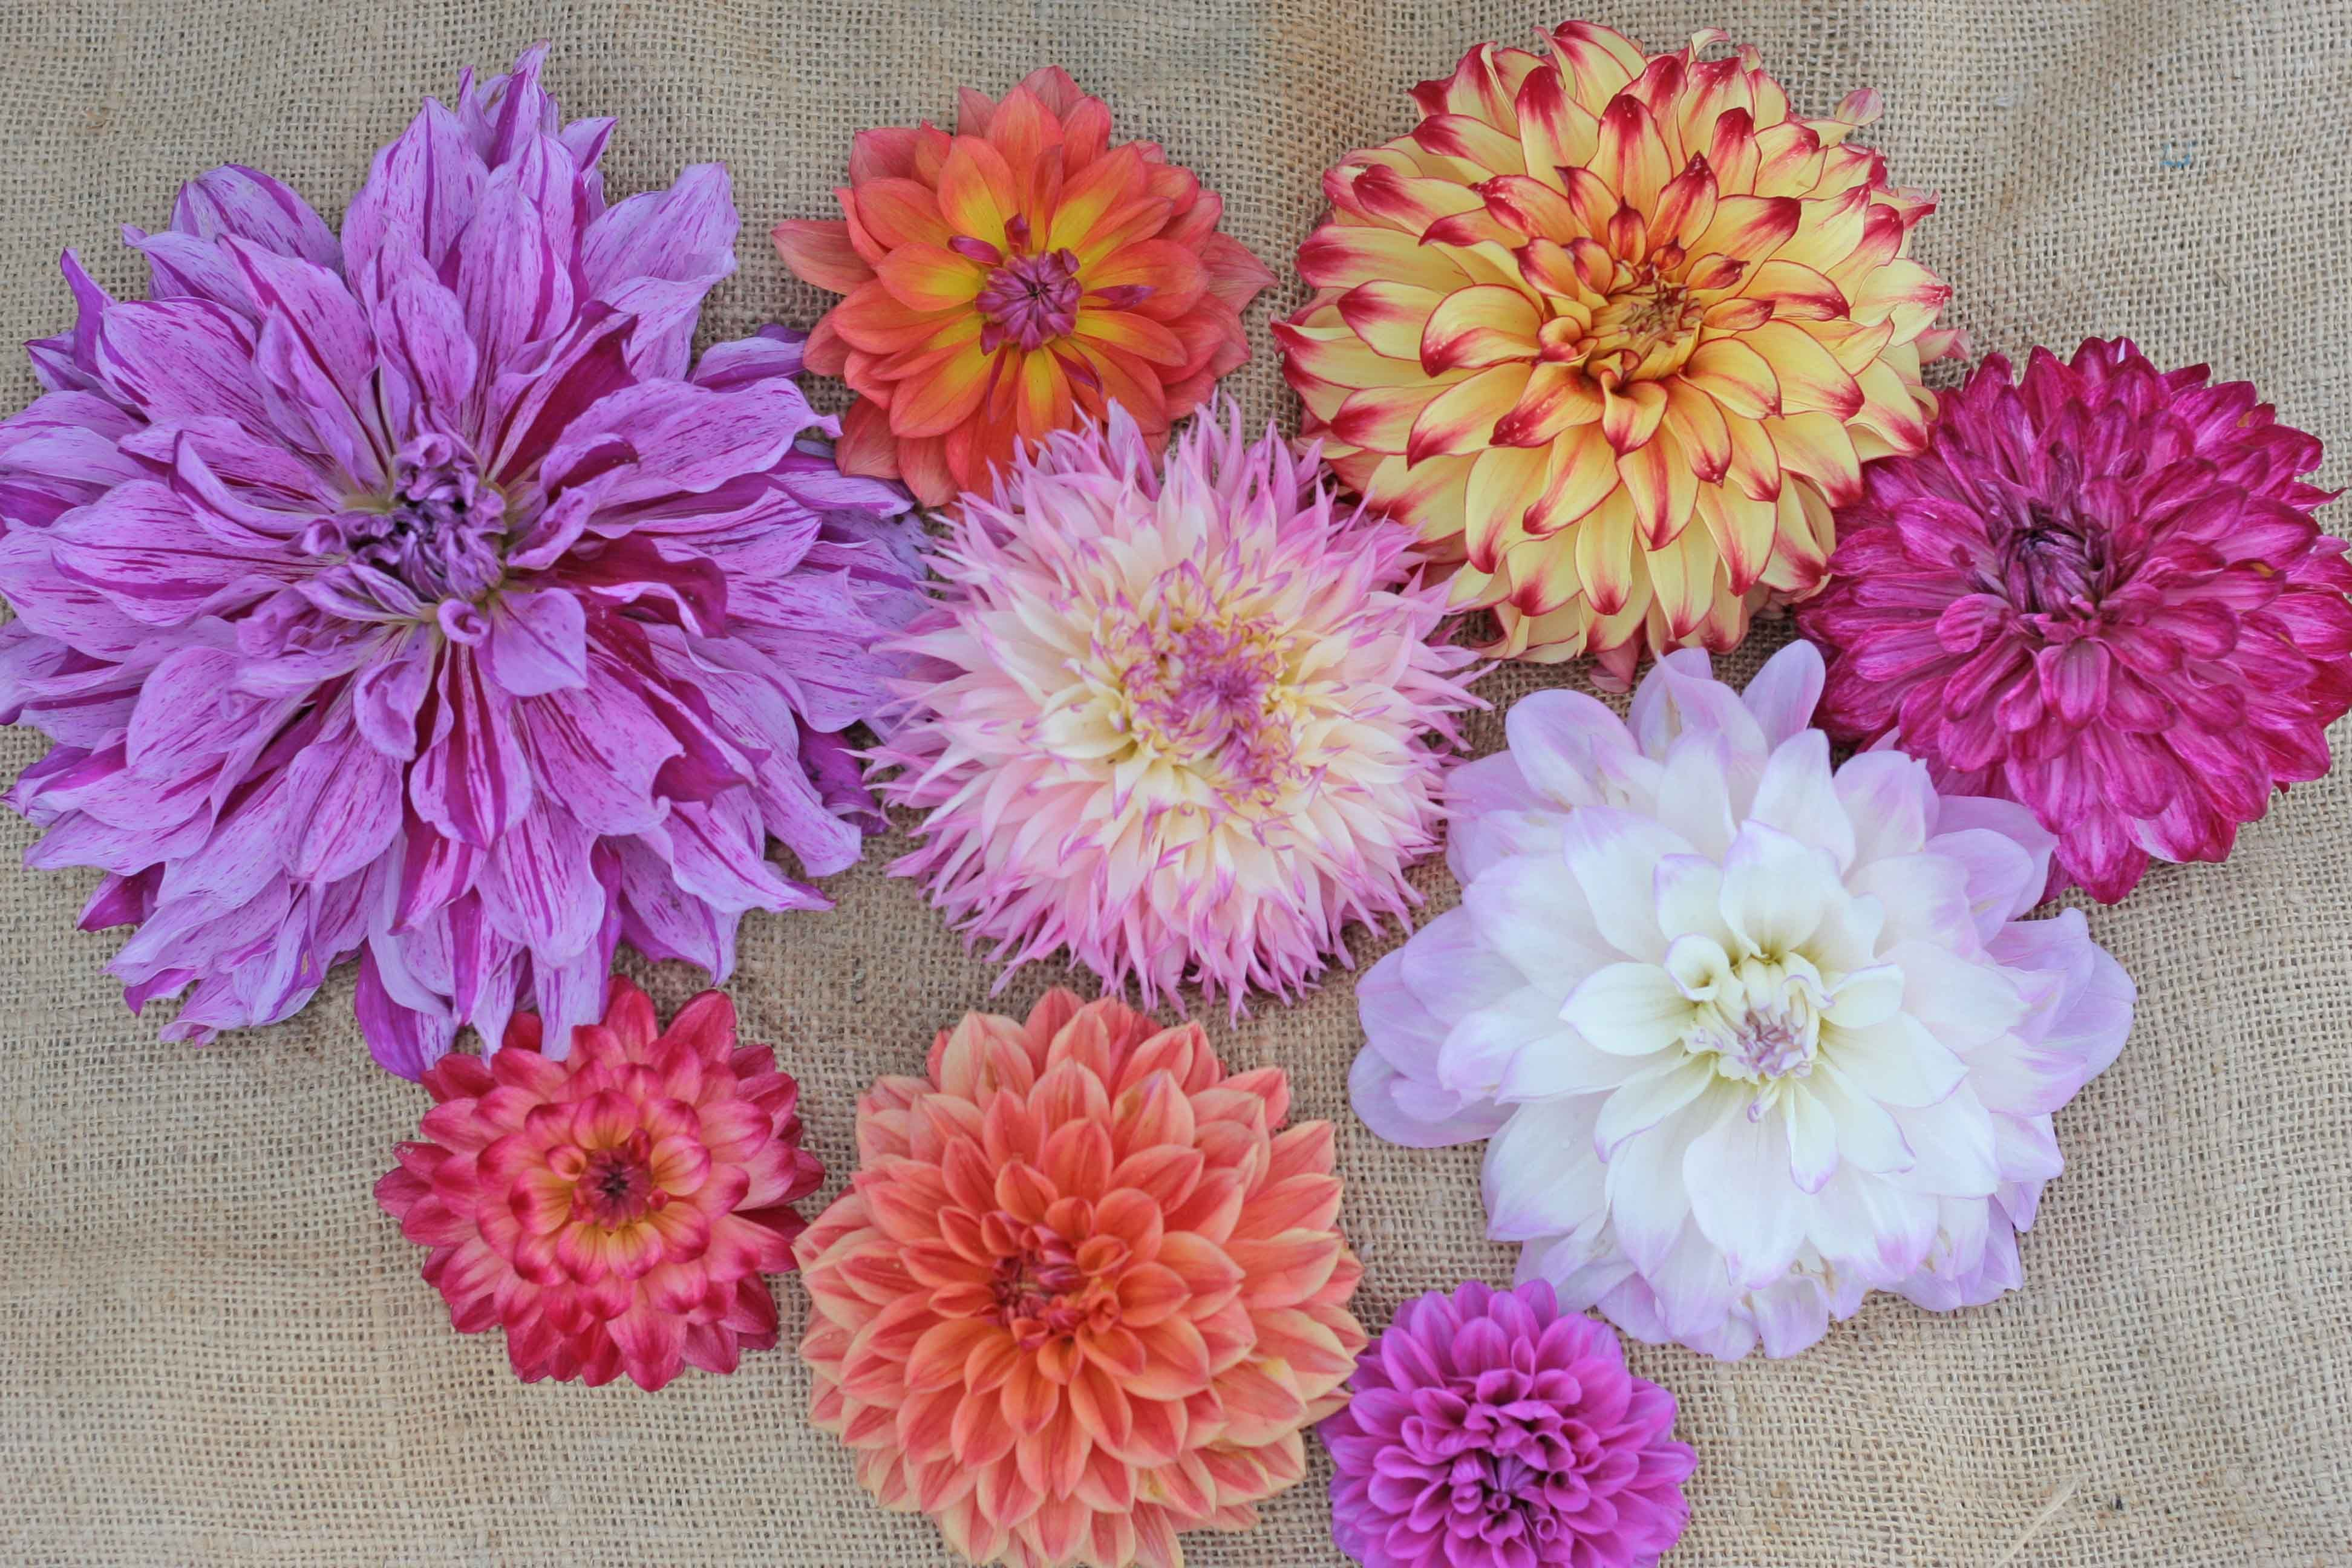 Beautifull Mix Of Dahlias Dahlias Have So Many Different Colors